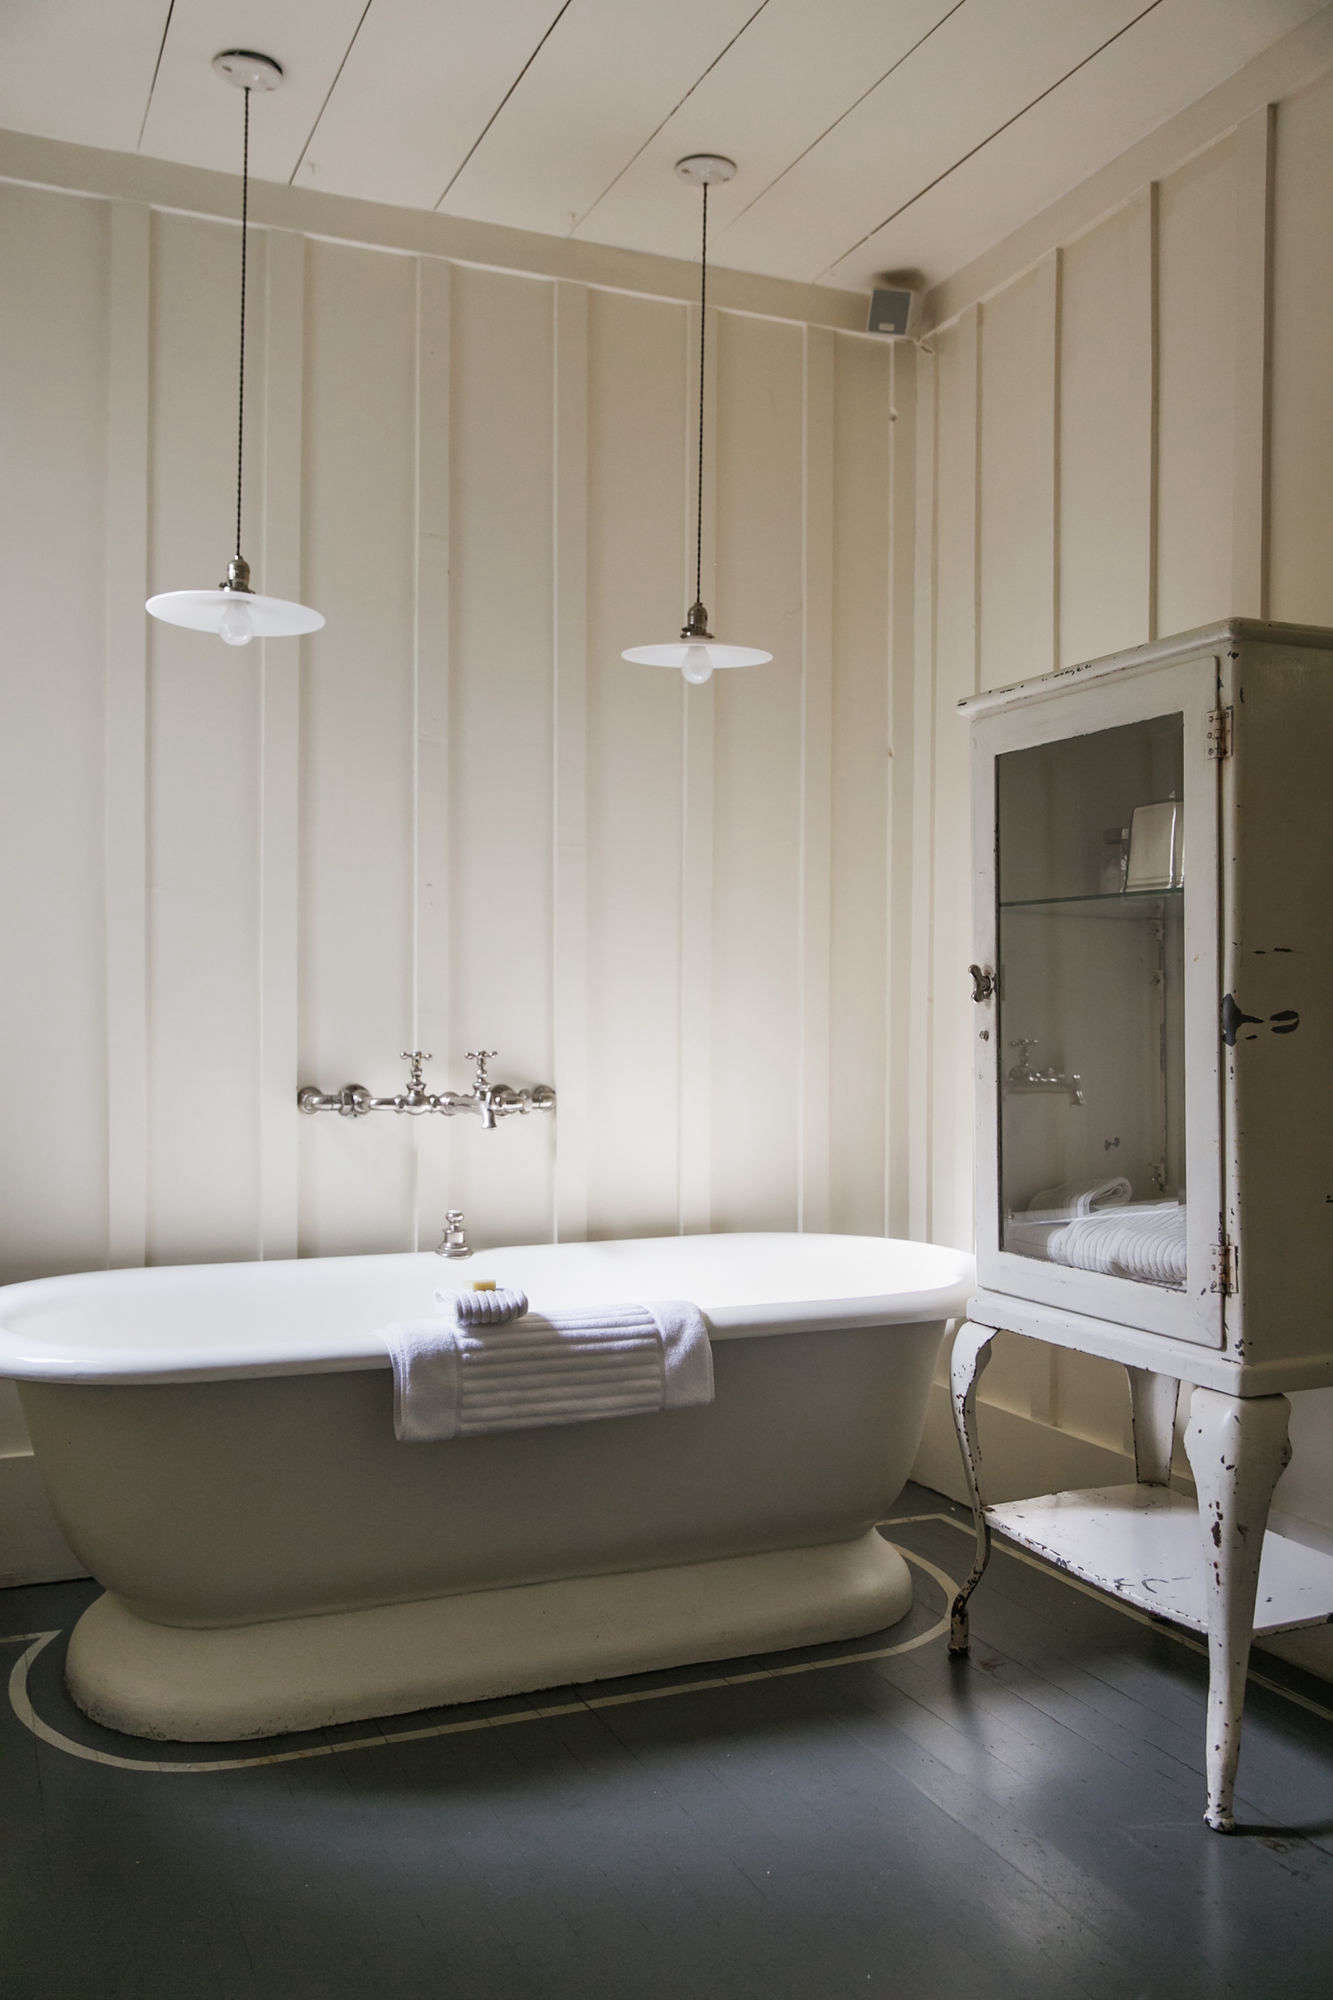 The paneled bath with vintage fixtures and furniture.